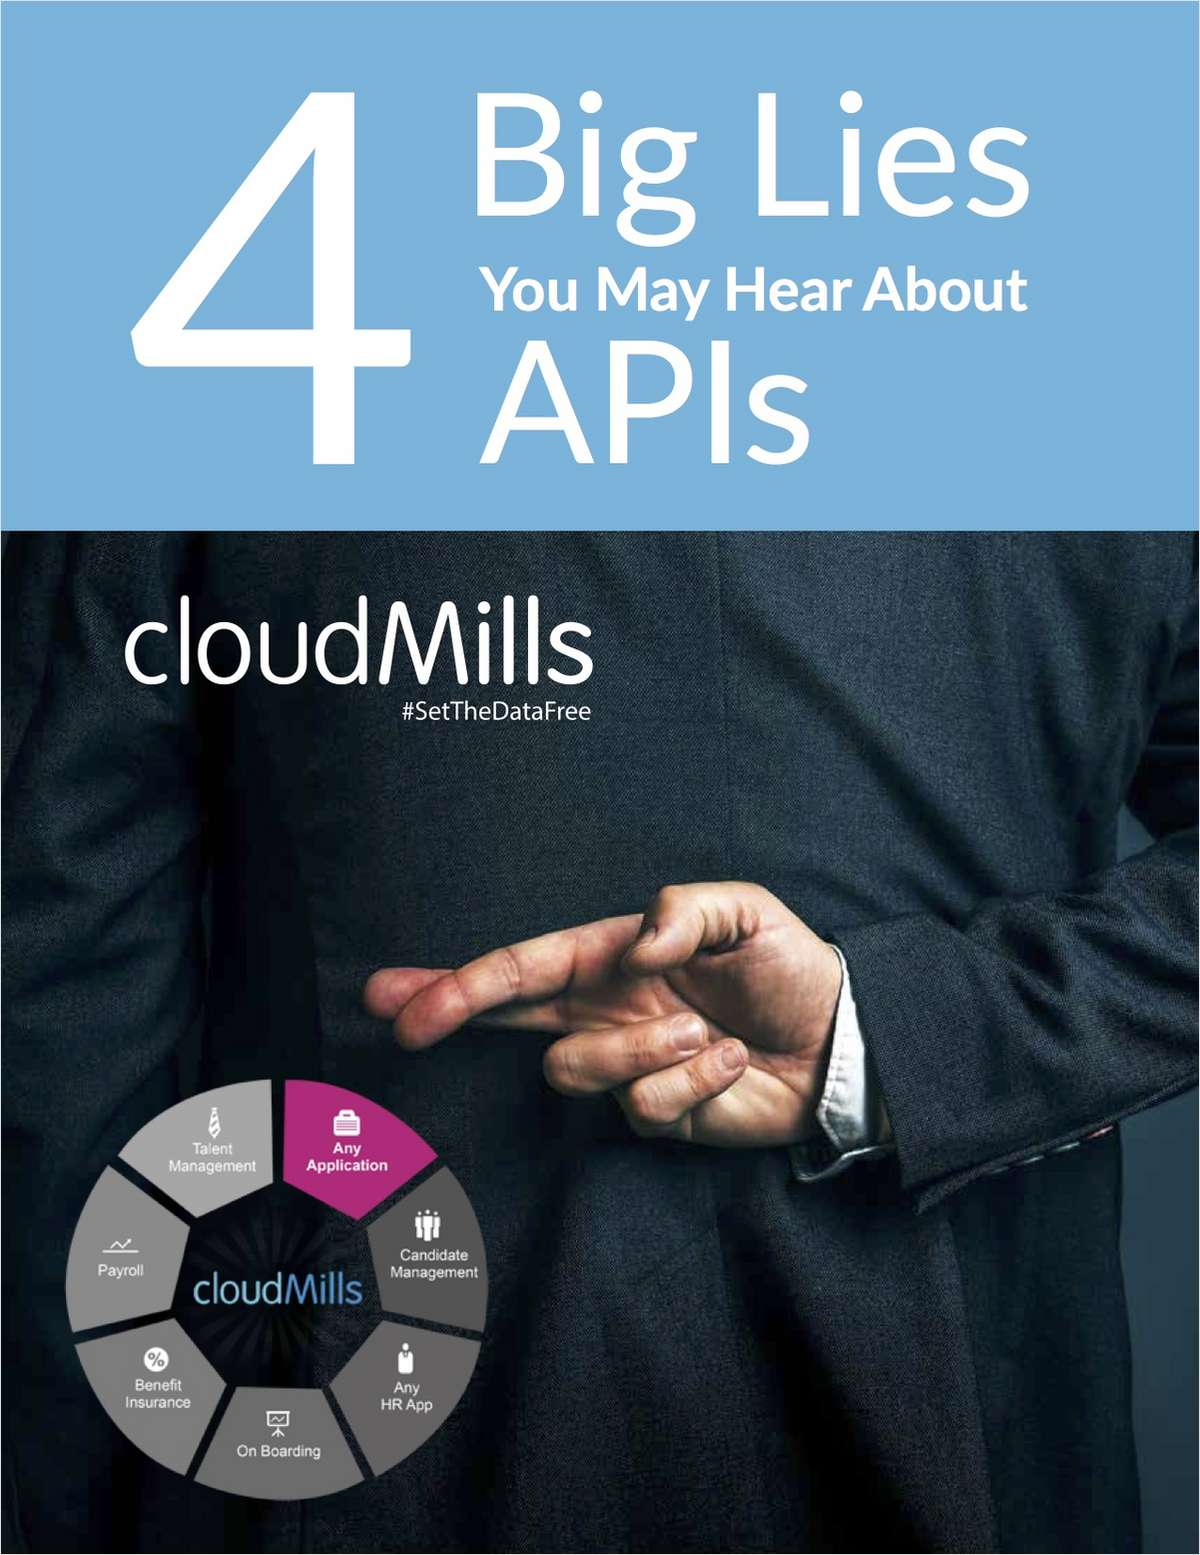 4 Big Lies You May Hear About APIs